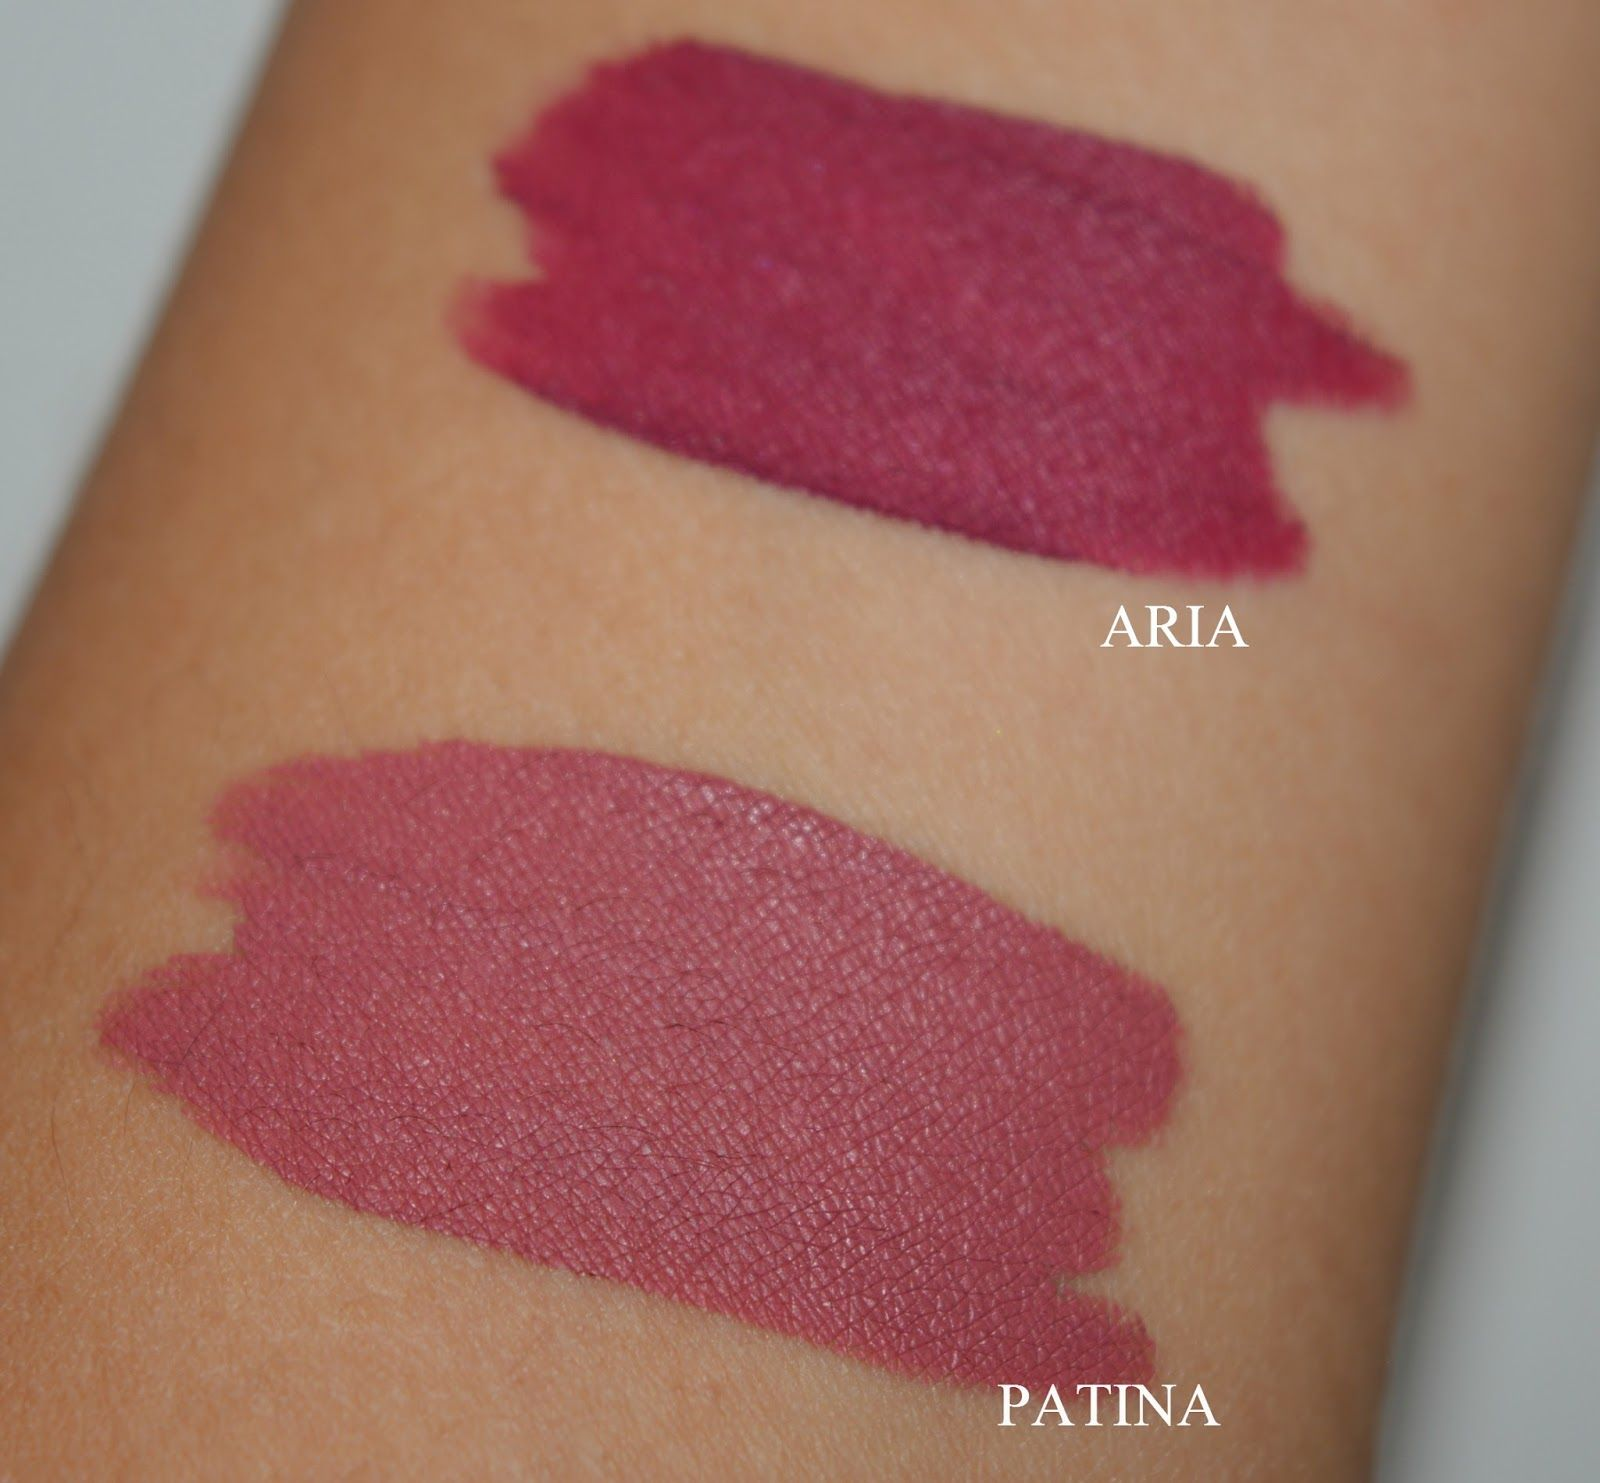 "Stila Stay-All-Day Liquid Lipstick in ""Patina"" - Google Search 